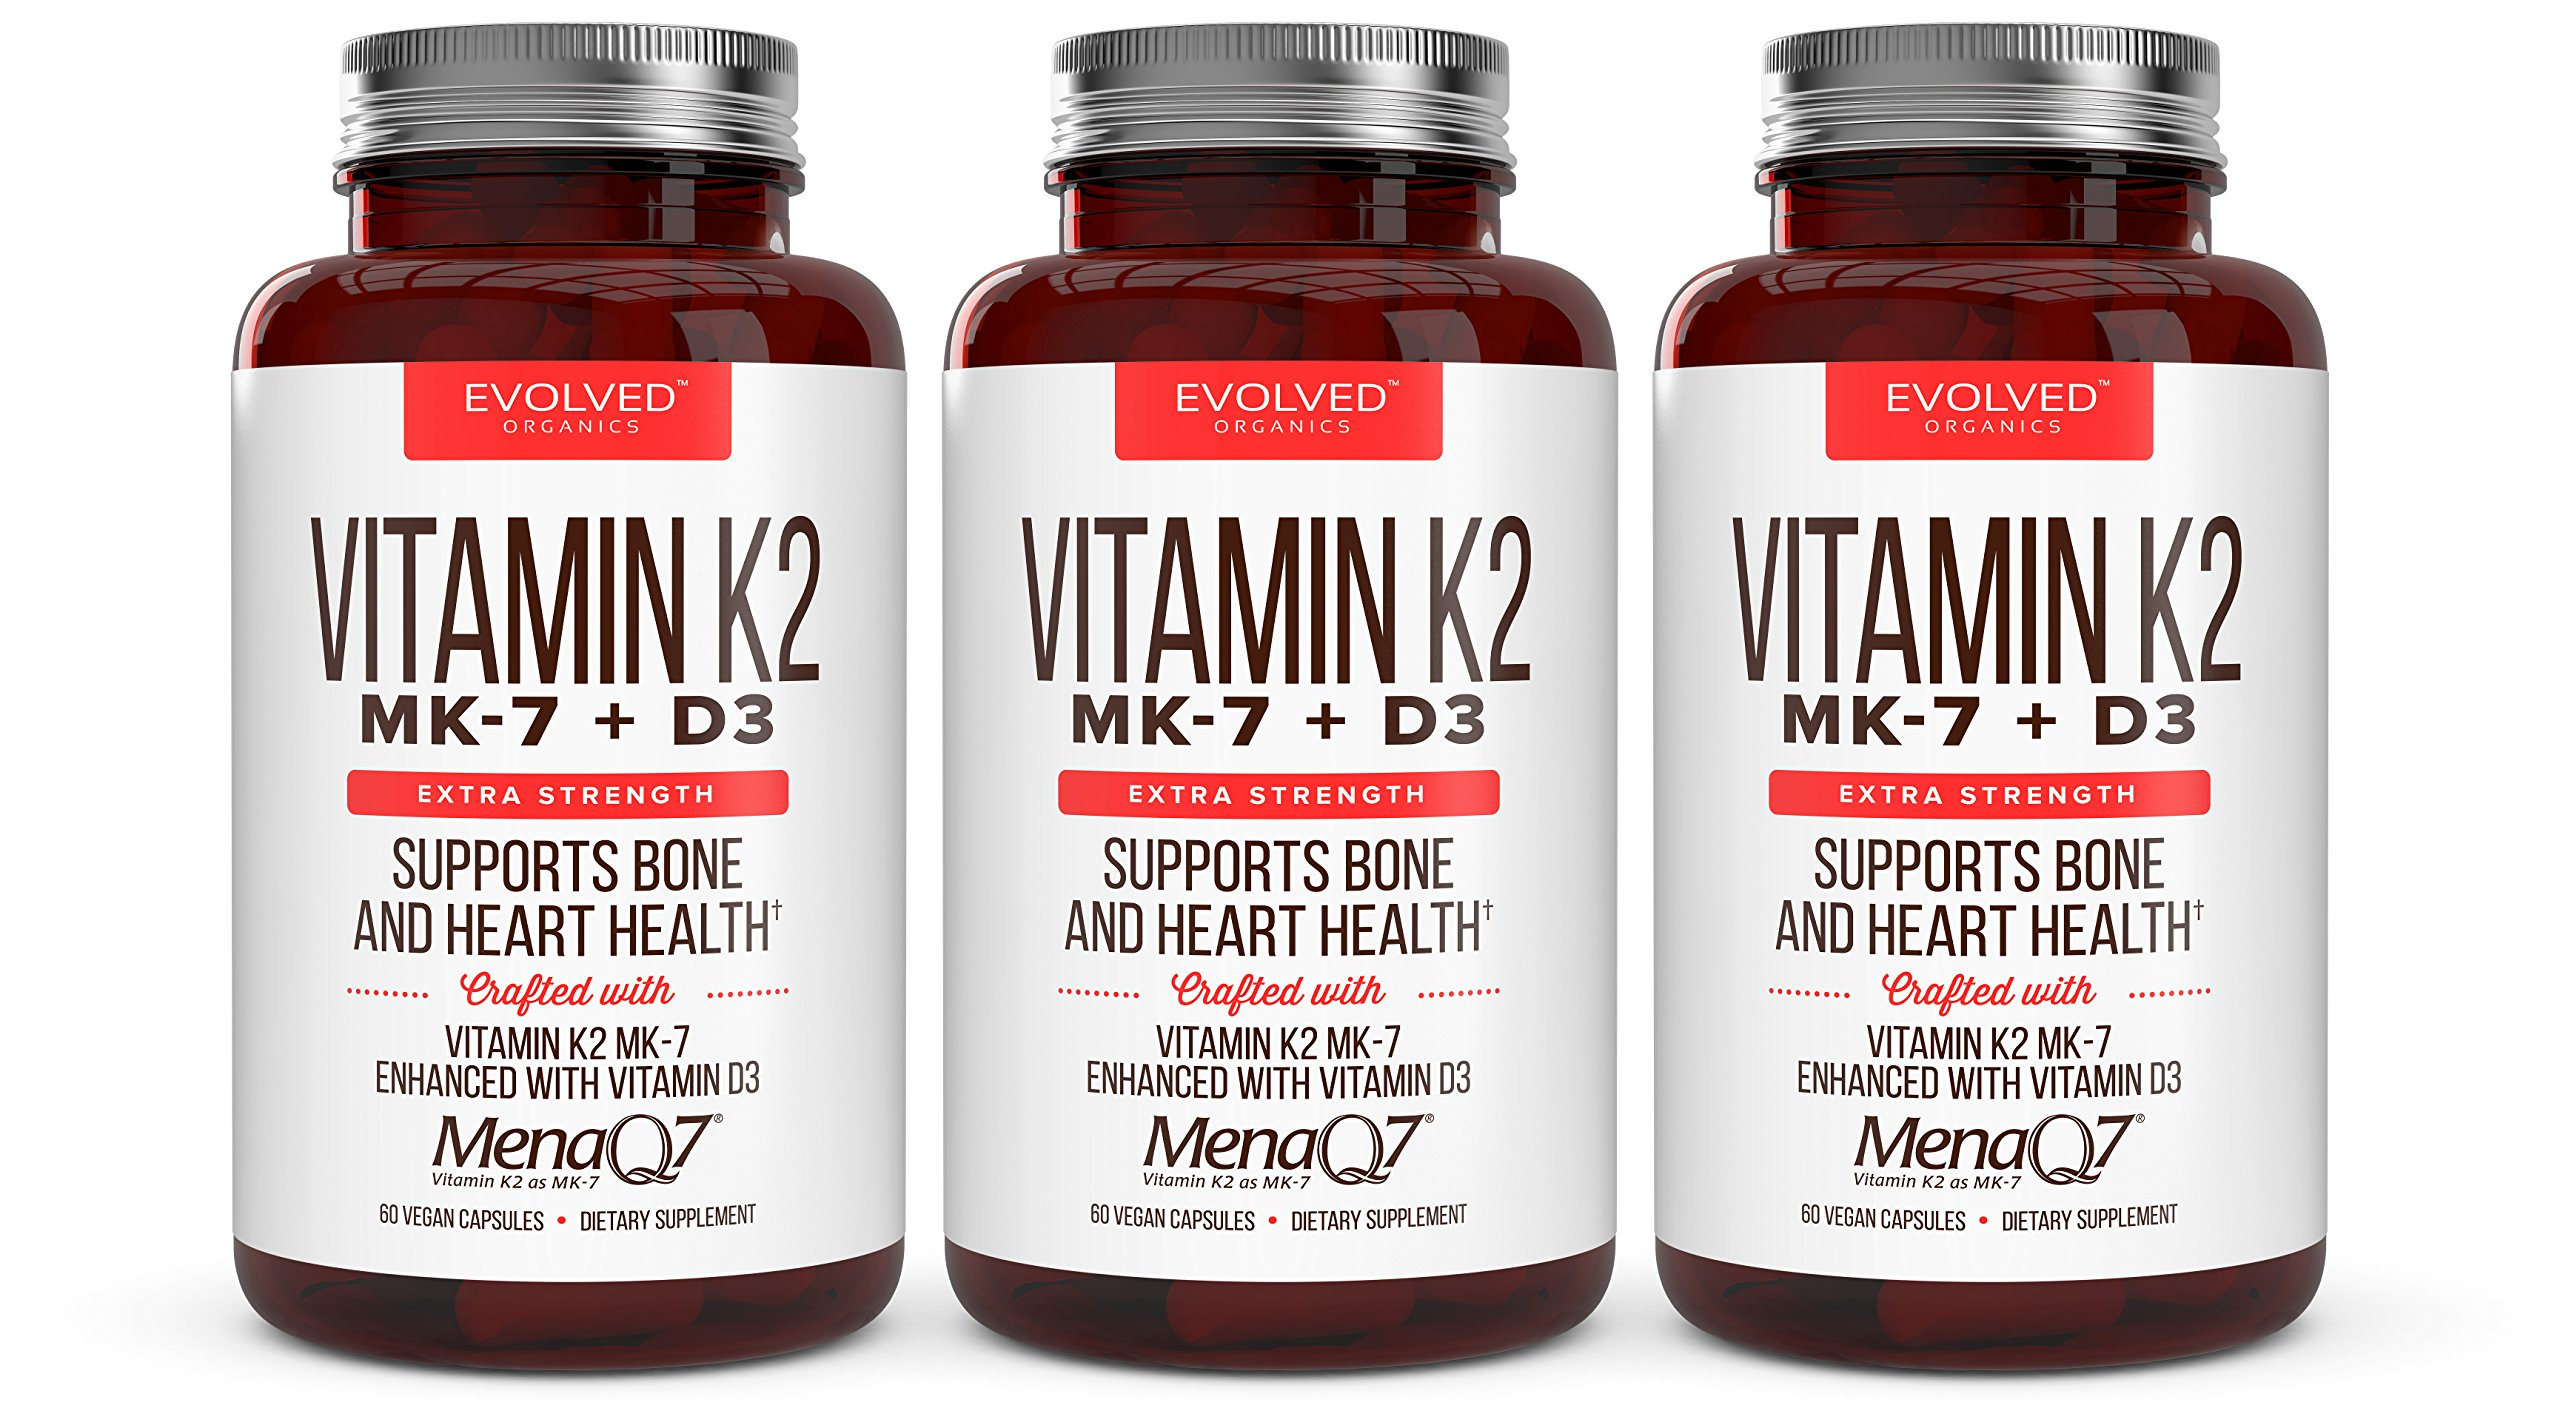 Premium Extra Strength Vitamin K2 with D3- for Healthy Bones, Healthy Heart & Cardiovascular Health, 60 Small & Easy to Swallow Caps MenaQ7 180 mcg & Vitamin D3 5000 IU (3 Pack)